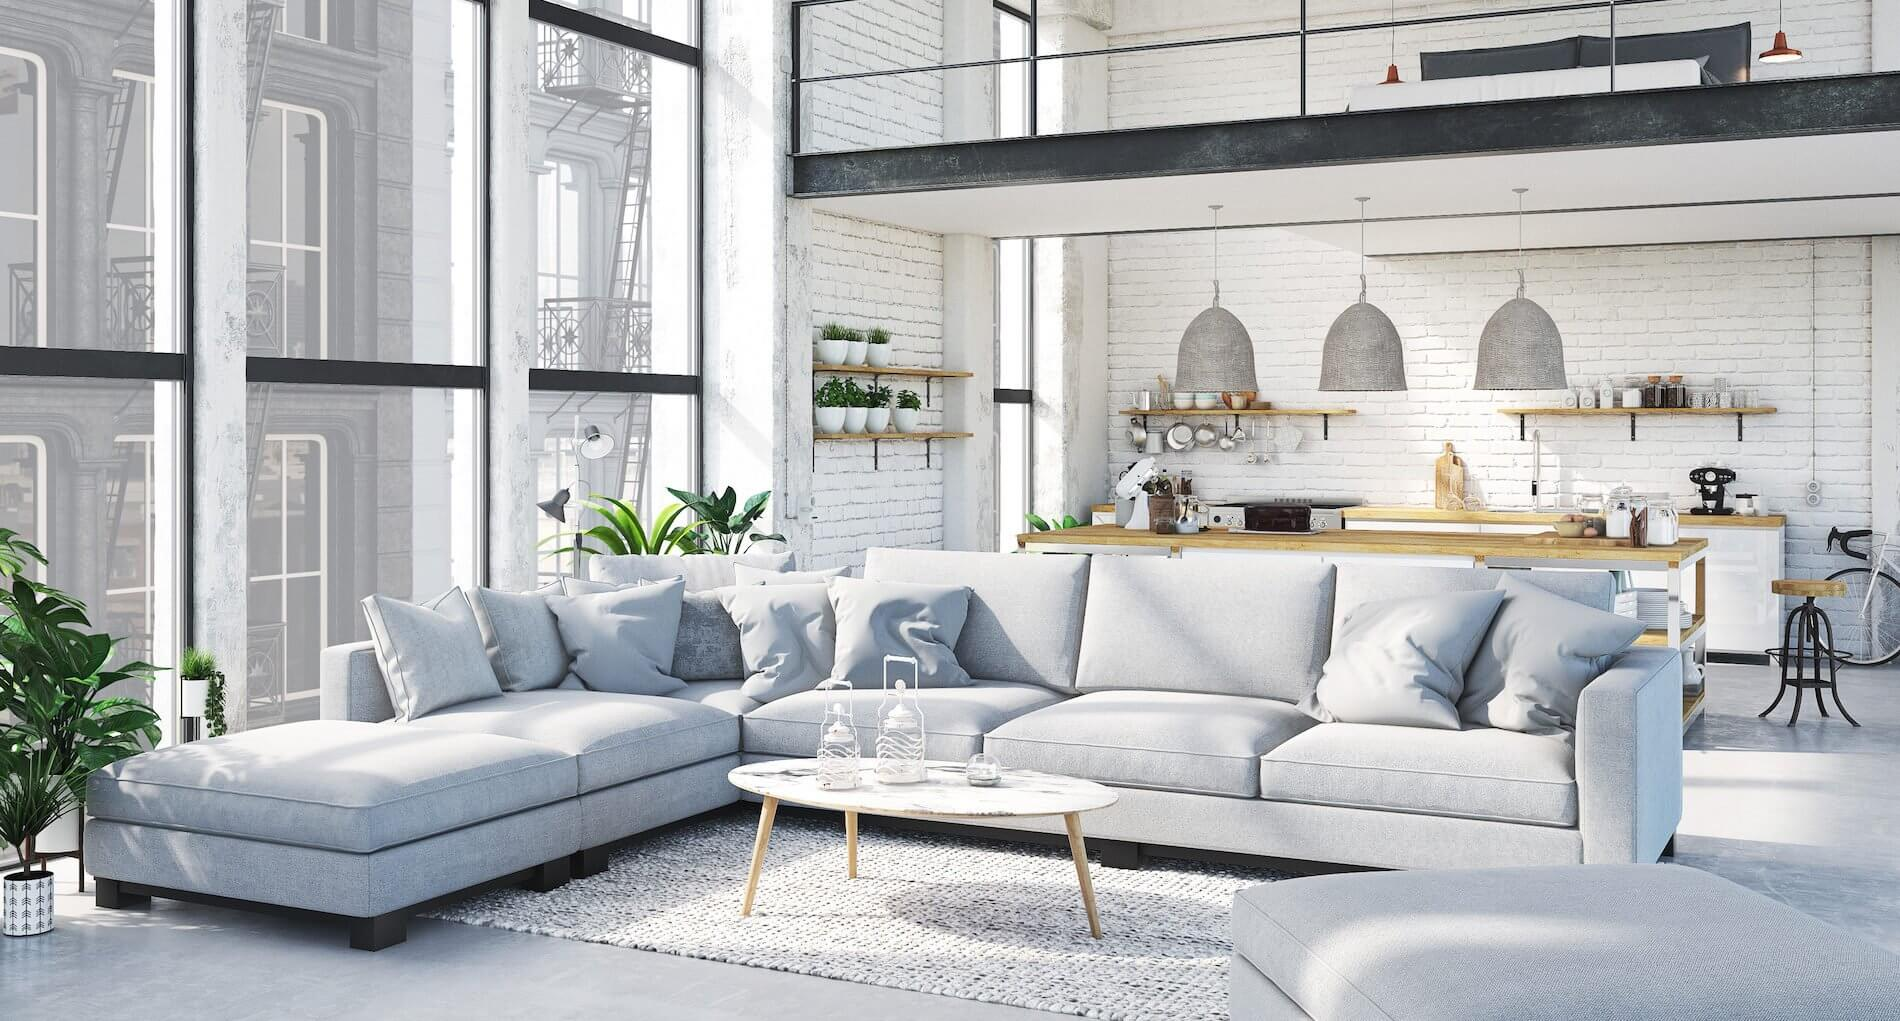 10 Tips to Create A Functional and Comfortable Home